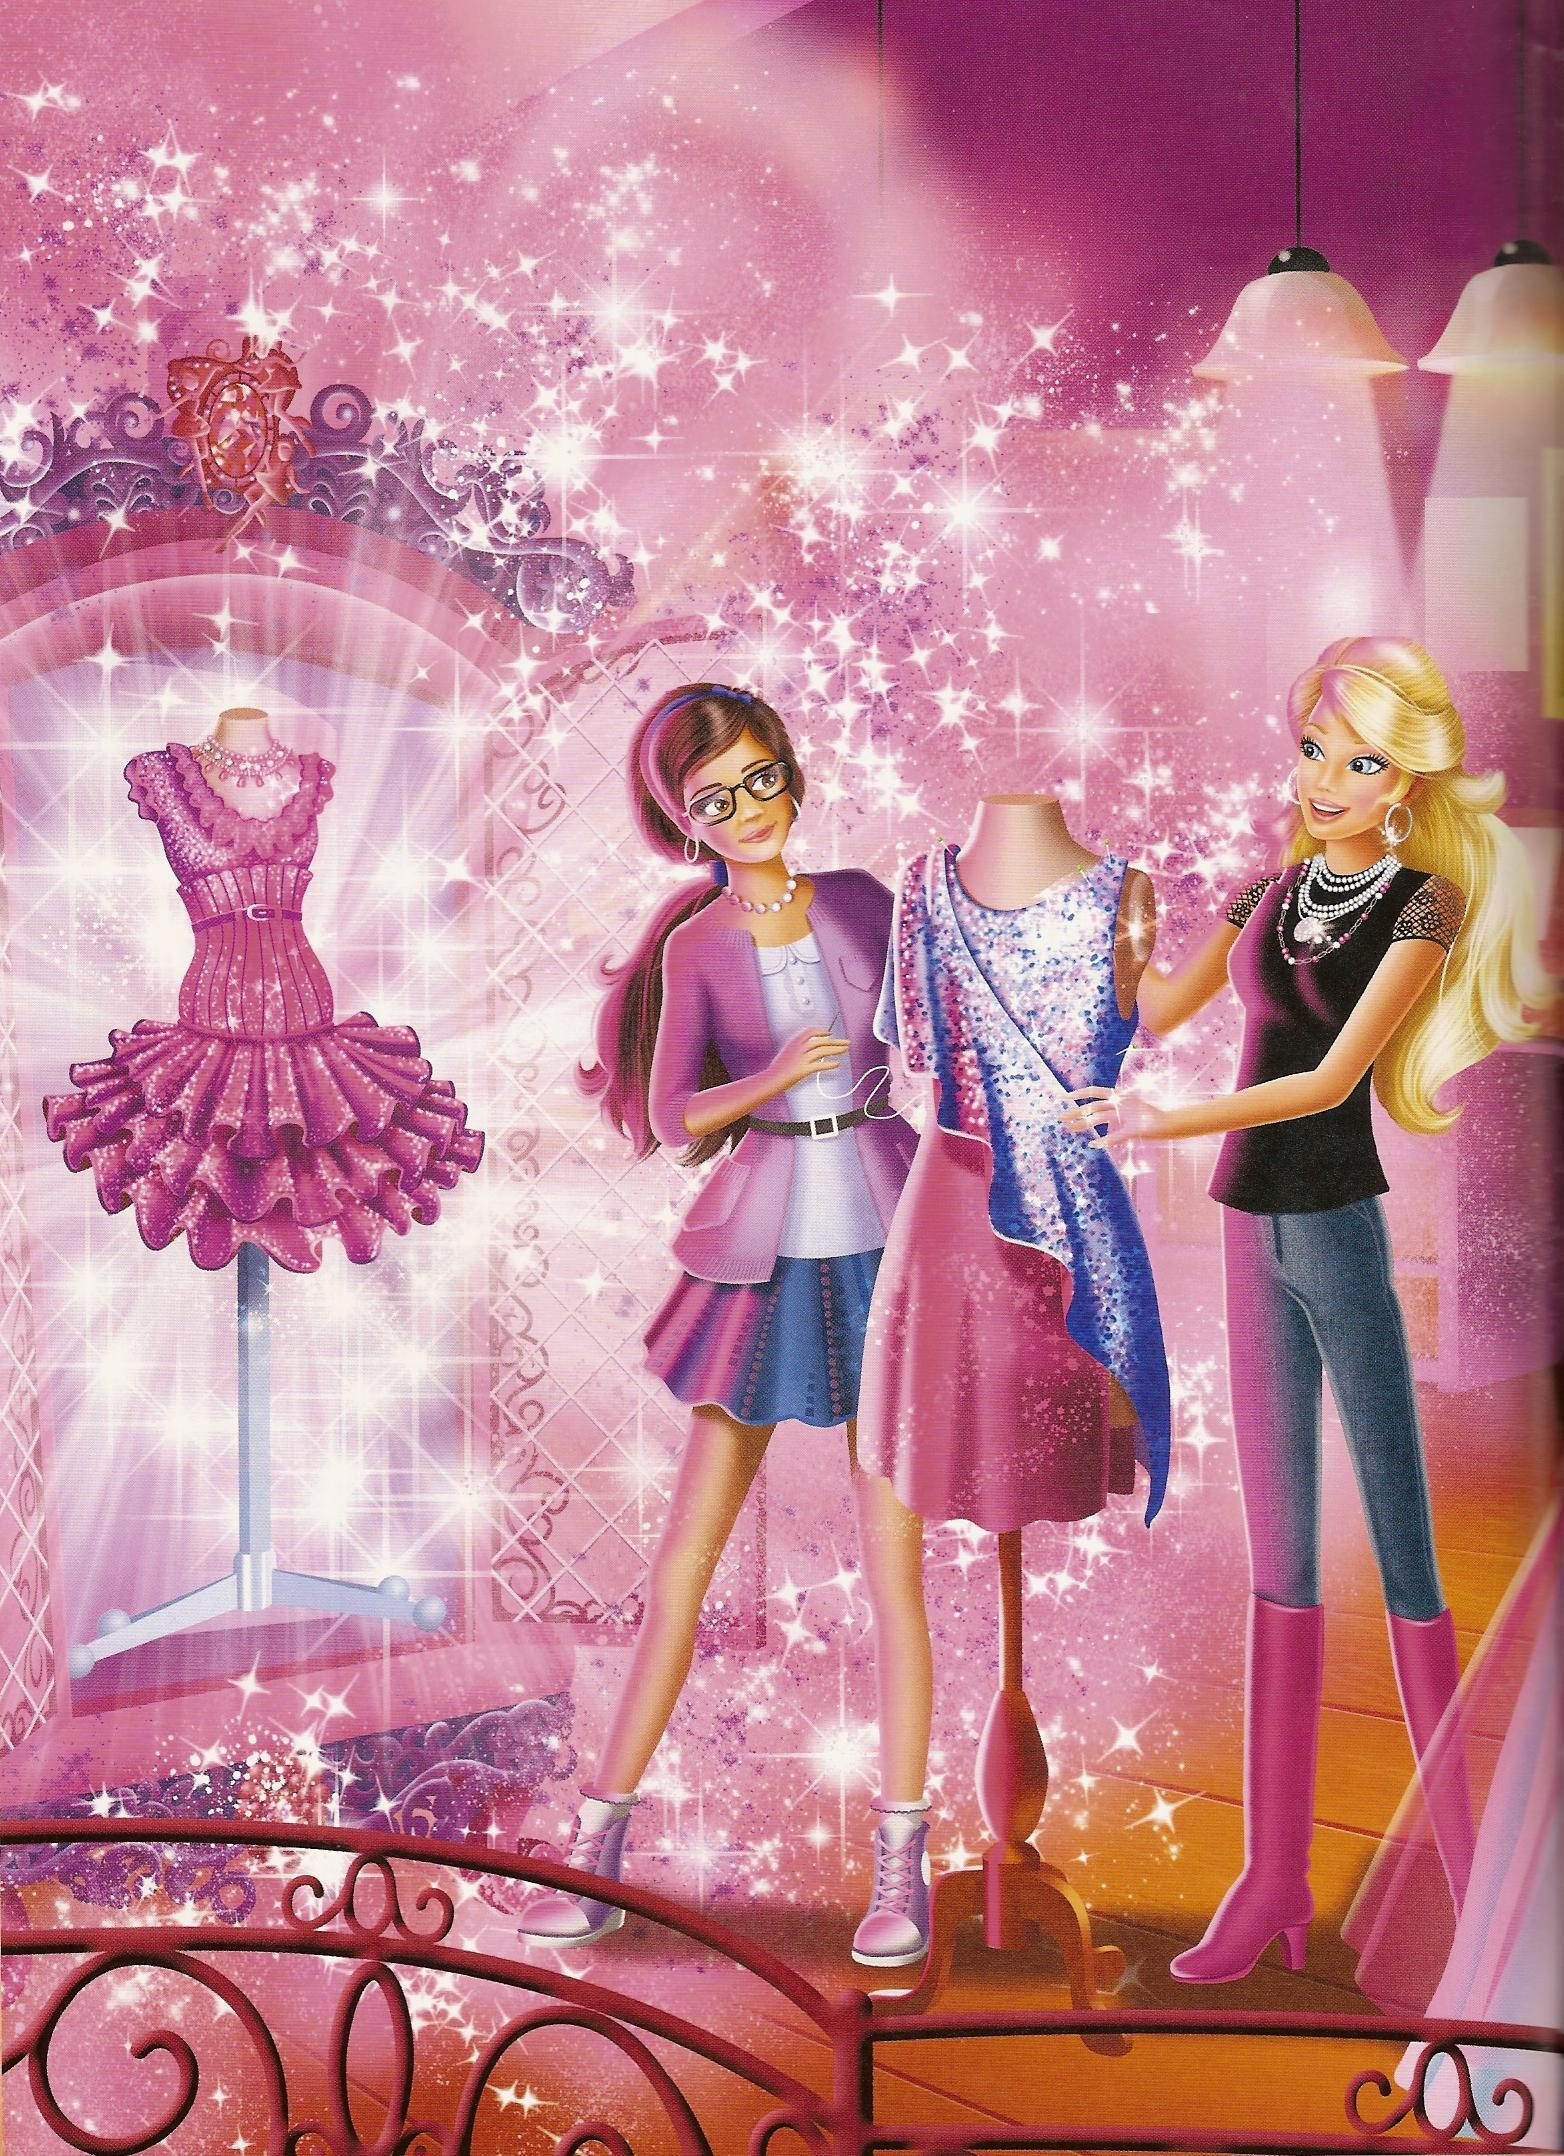 Barbie Fashion Fairytale Full Movie Fashion Fairytale barbie a